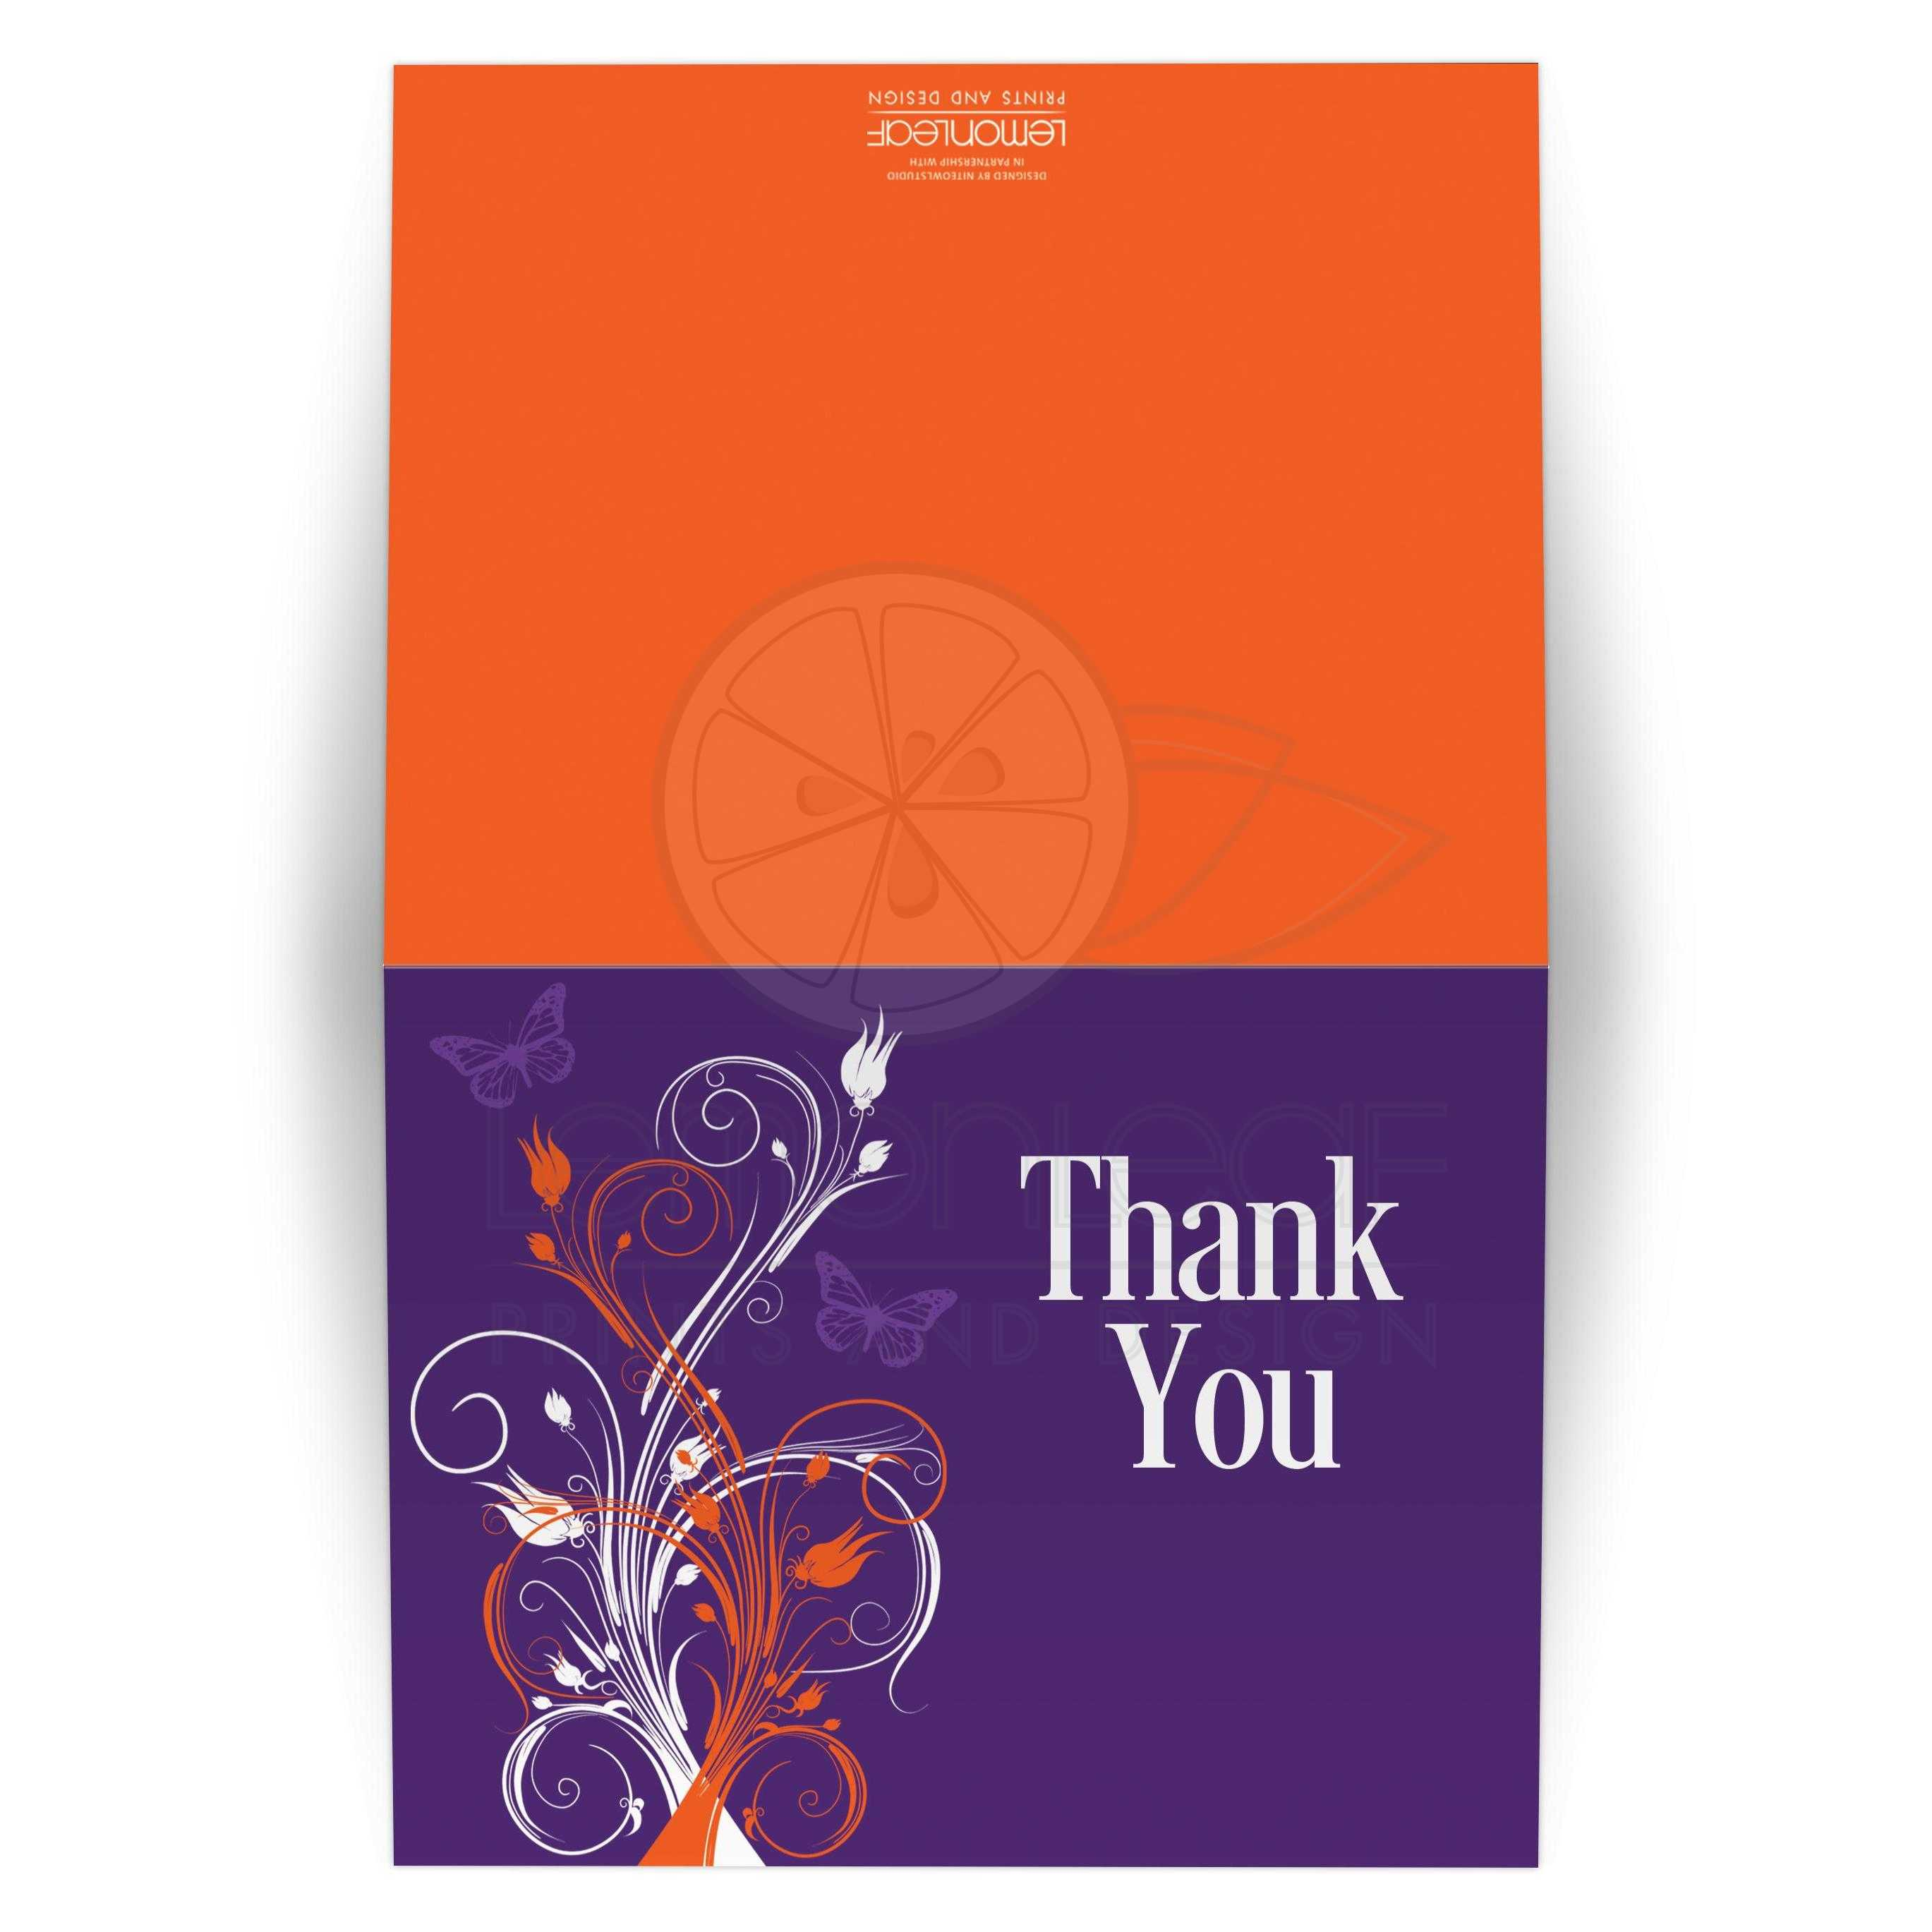 Wedding Thank You Card - BLANK | Purple, Orange, White Floral ...